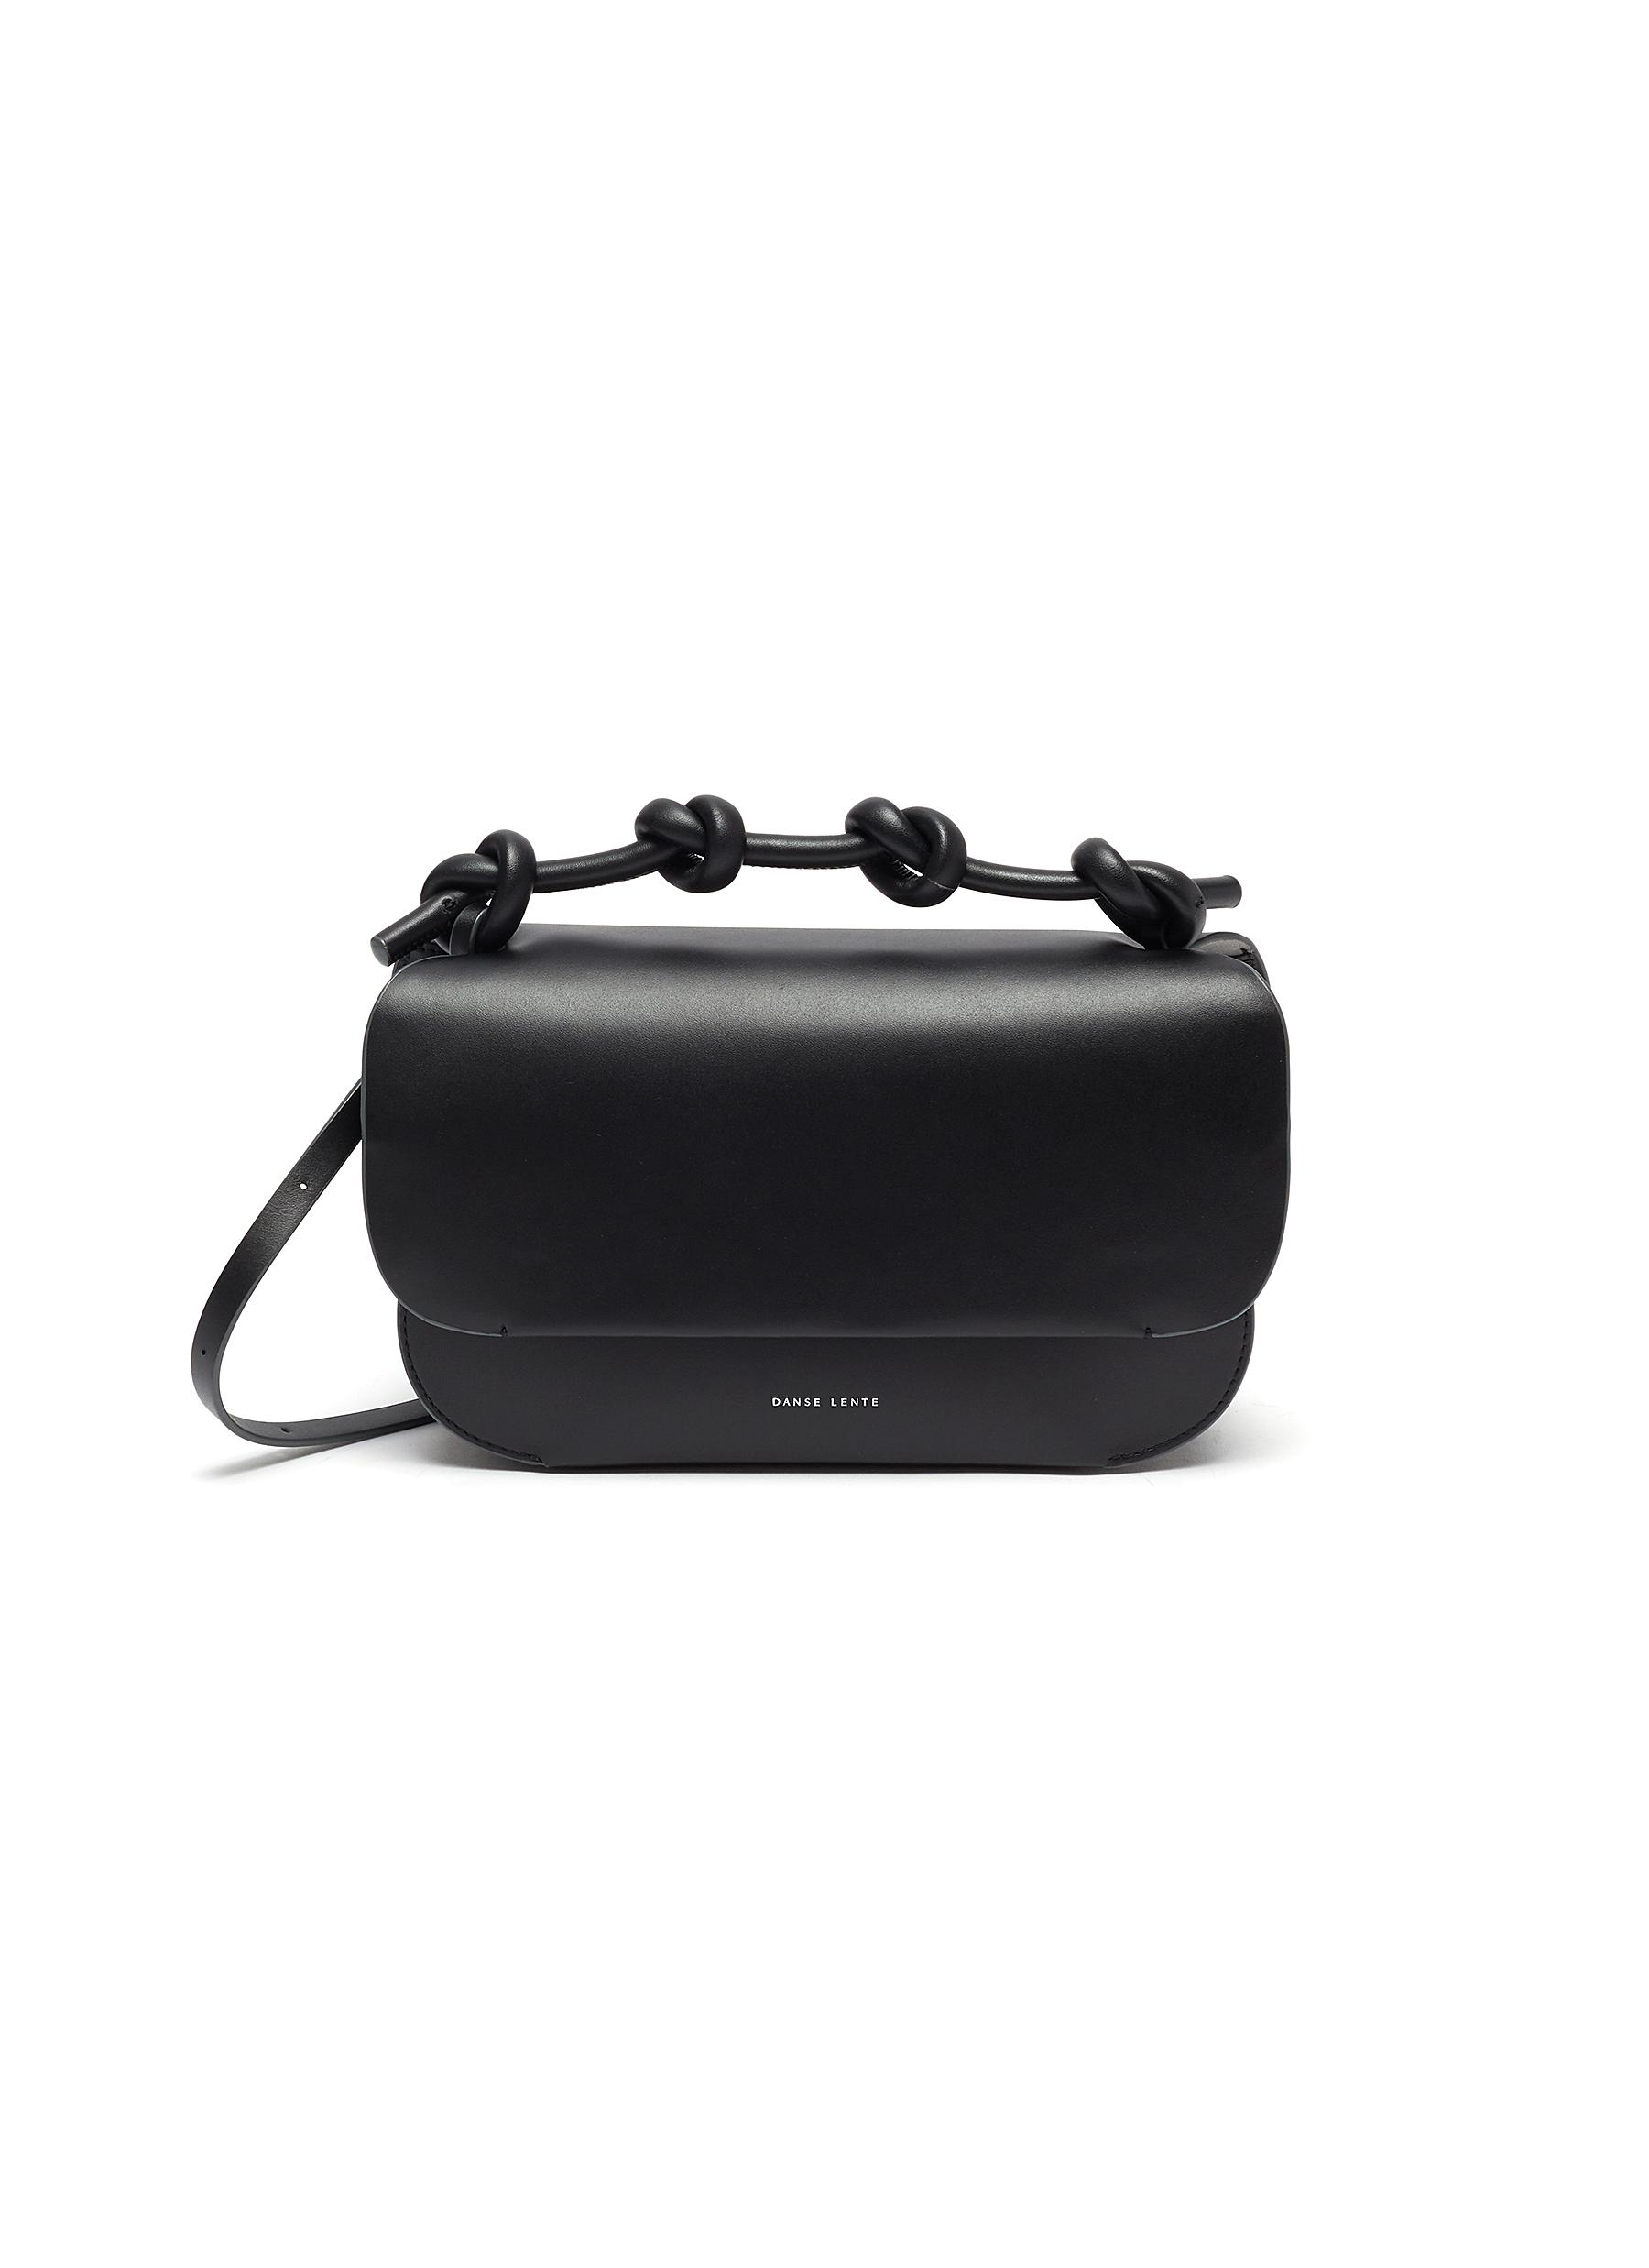 Danse Lente Leathers 'LEA' KNOTTED TOP HANDLE LEATHER CROSSBODY BAG